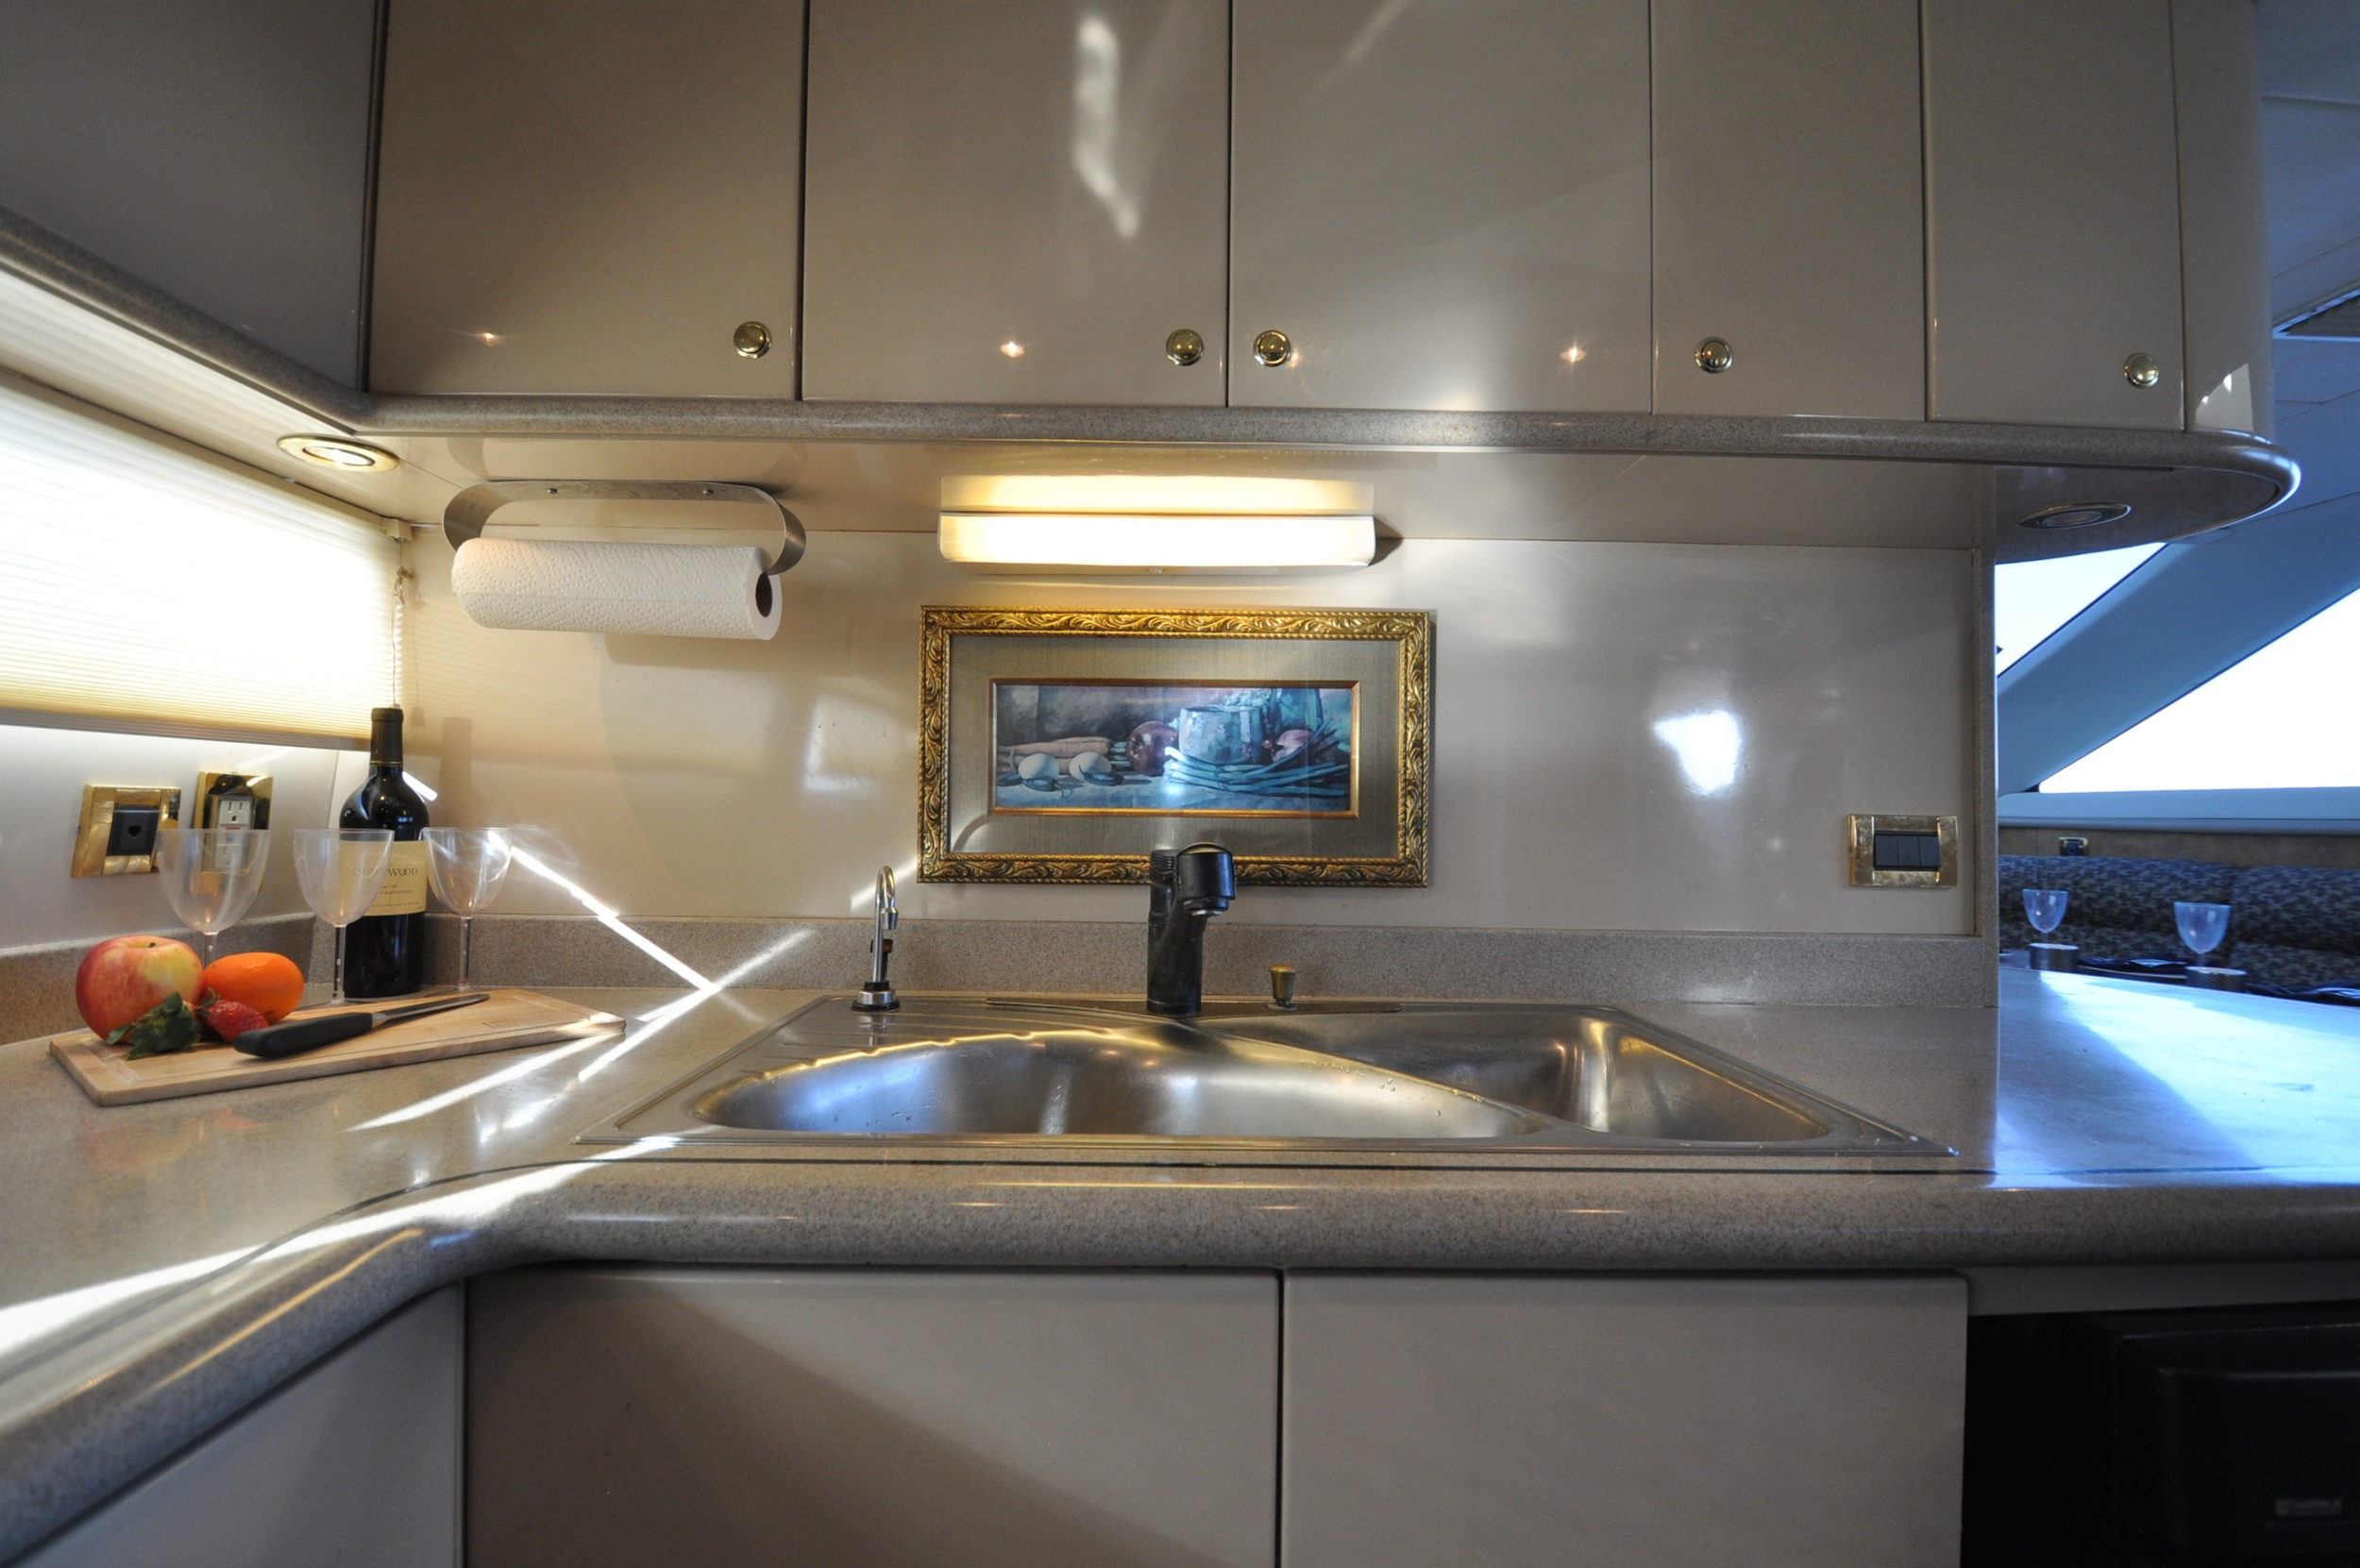 24 - Galley detail:sink.JPG